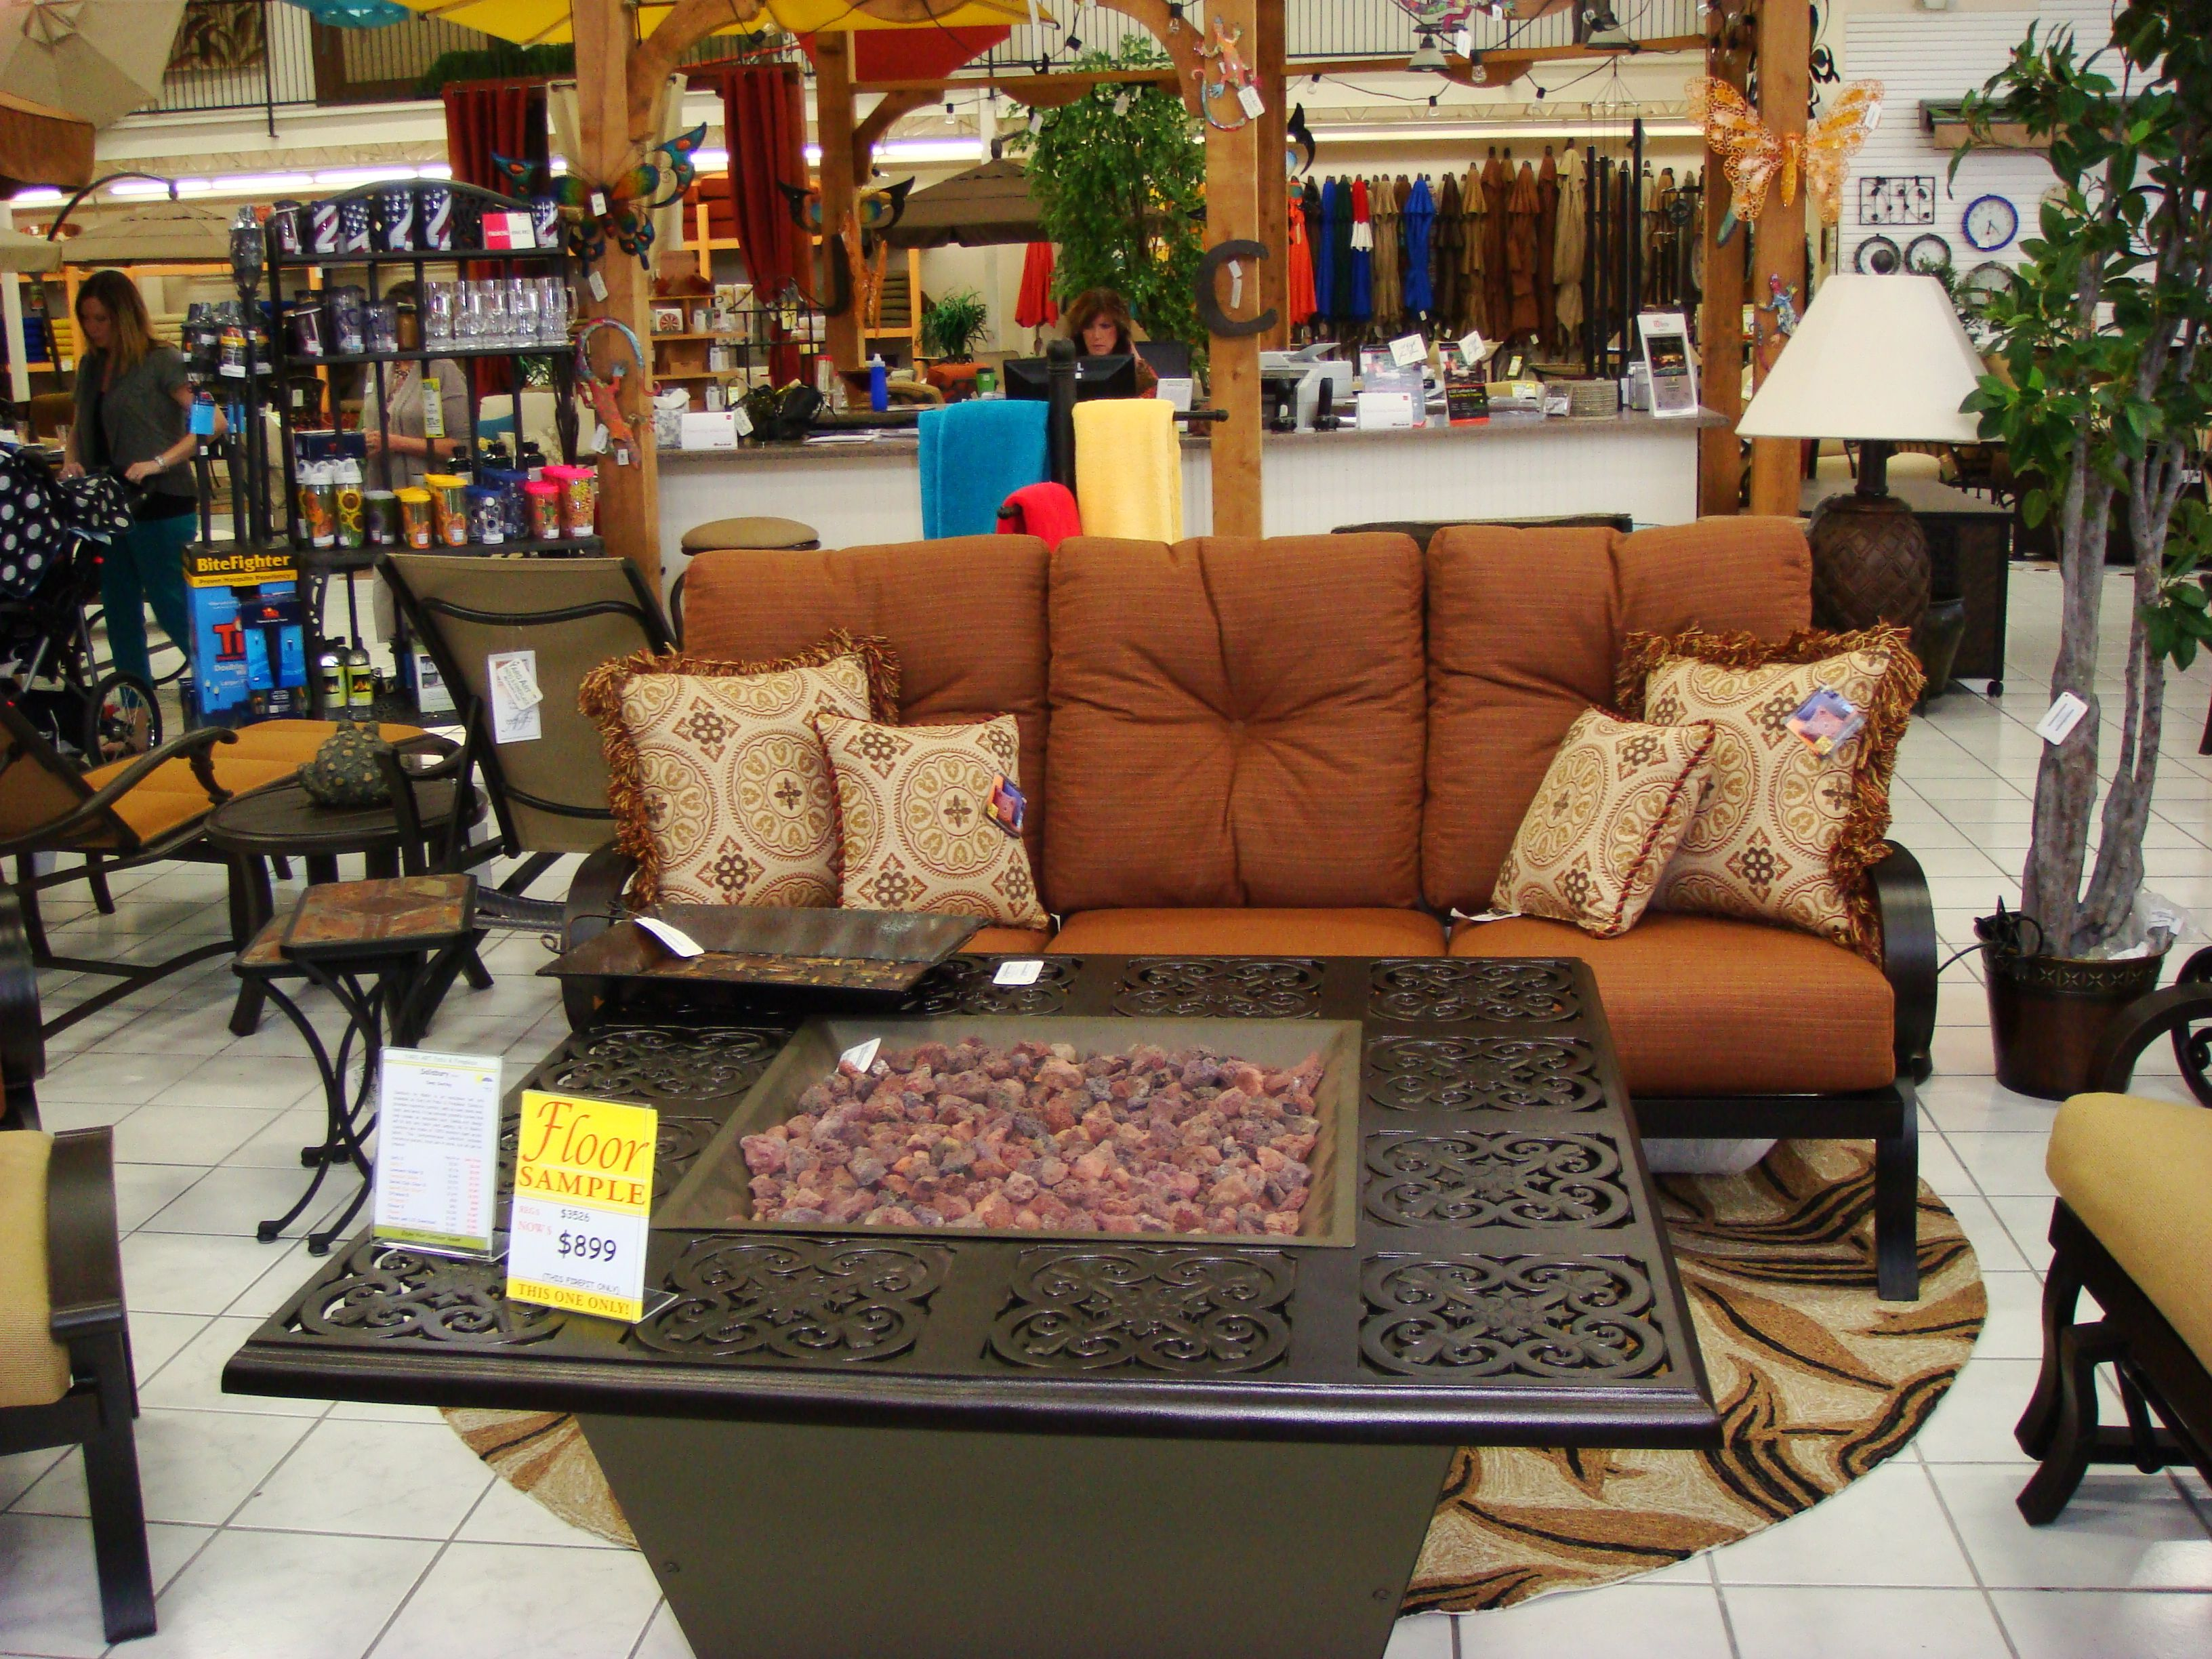 Yard Art Patio Fireplace Lewisville Patio Furniture Dining Sets Rugs Accessories Umbrel Patio Fireplace Patio Furniture Dining Set Dining Furniture